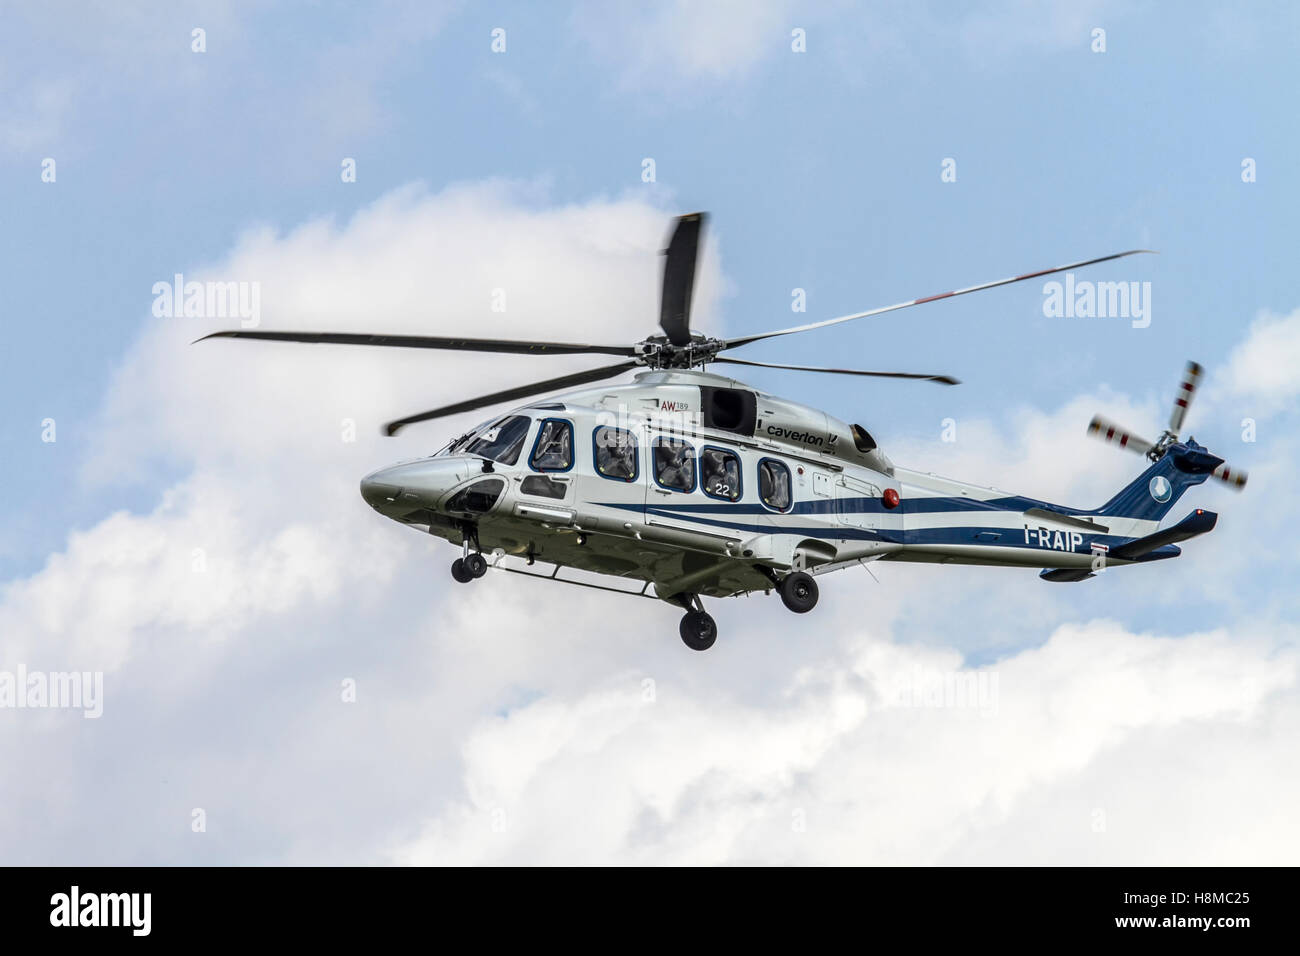 Agusta-Westland AW-139 helicopter Photographed in Italy - Stock Image